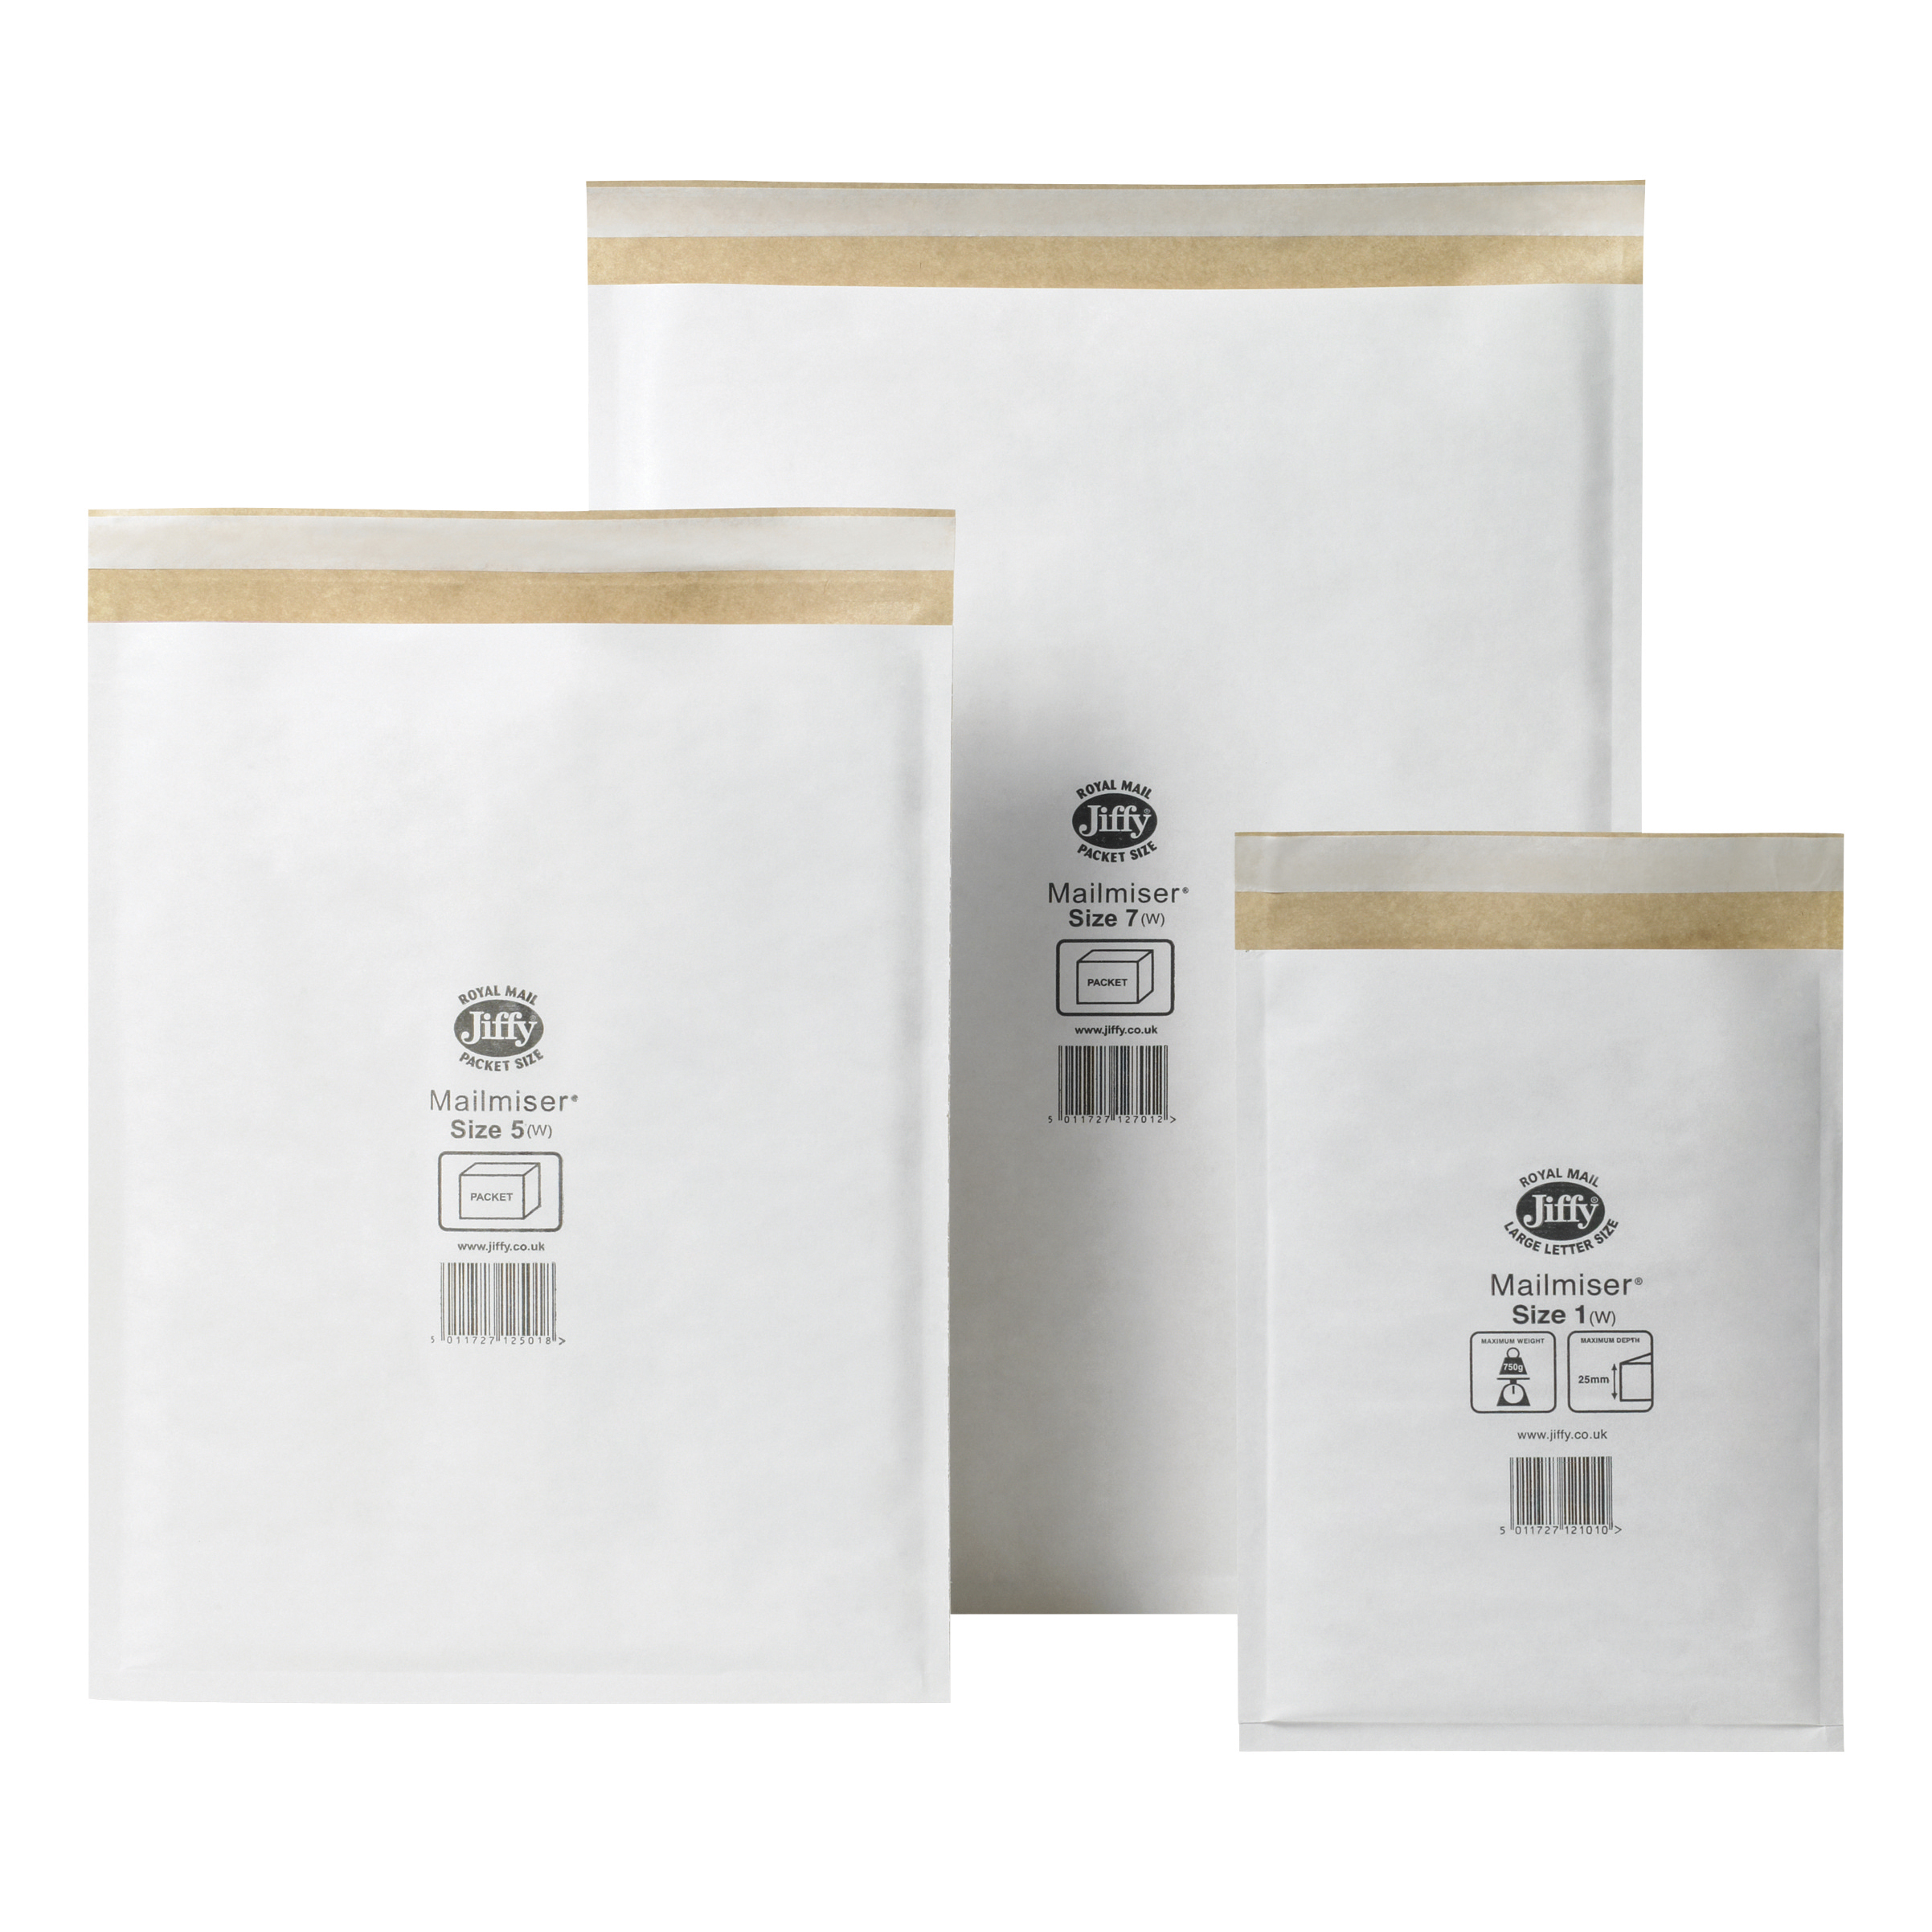 Padded Bags & Envelopes Jiffy Mailmiser Protective Envelopes Bubble-lined Size 7 White 340x445mm Ref JMM-WH-7 Pack 50